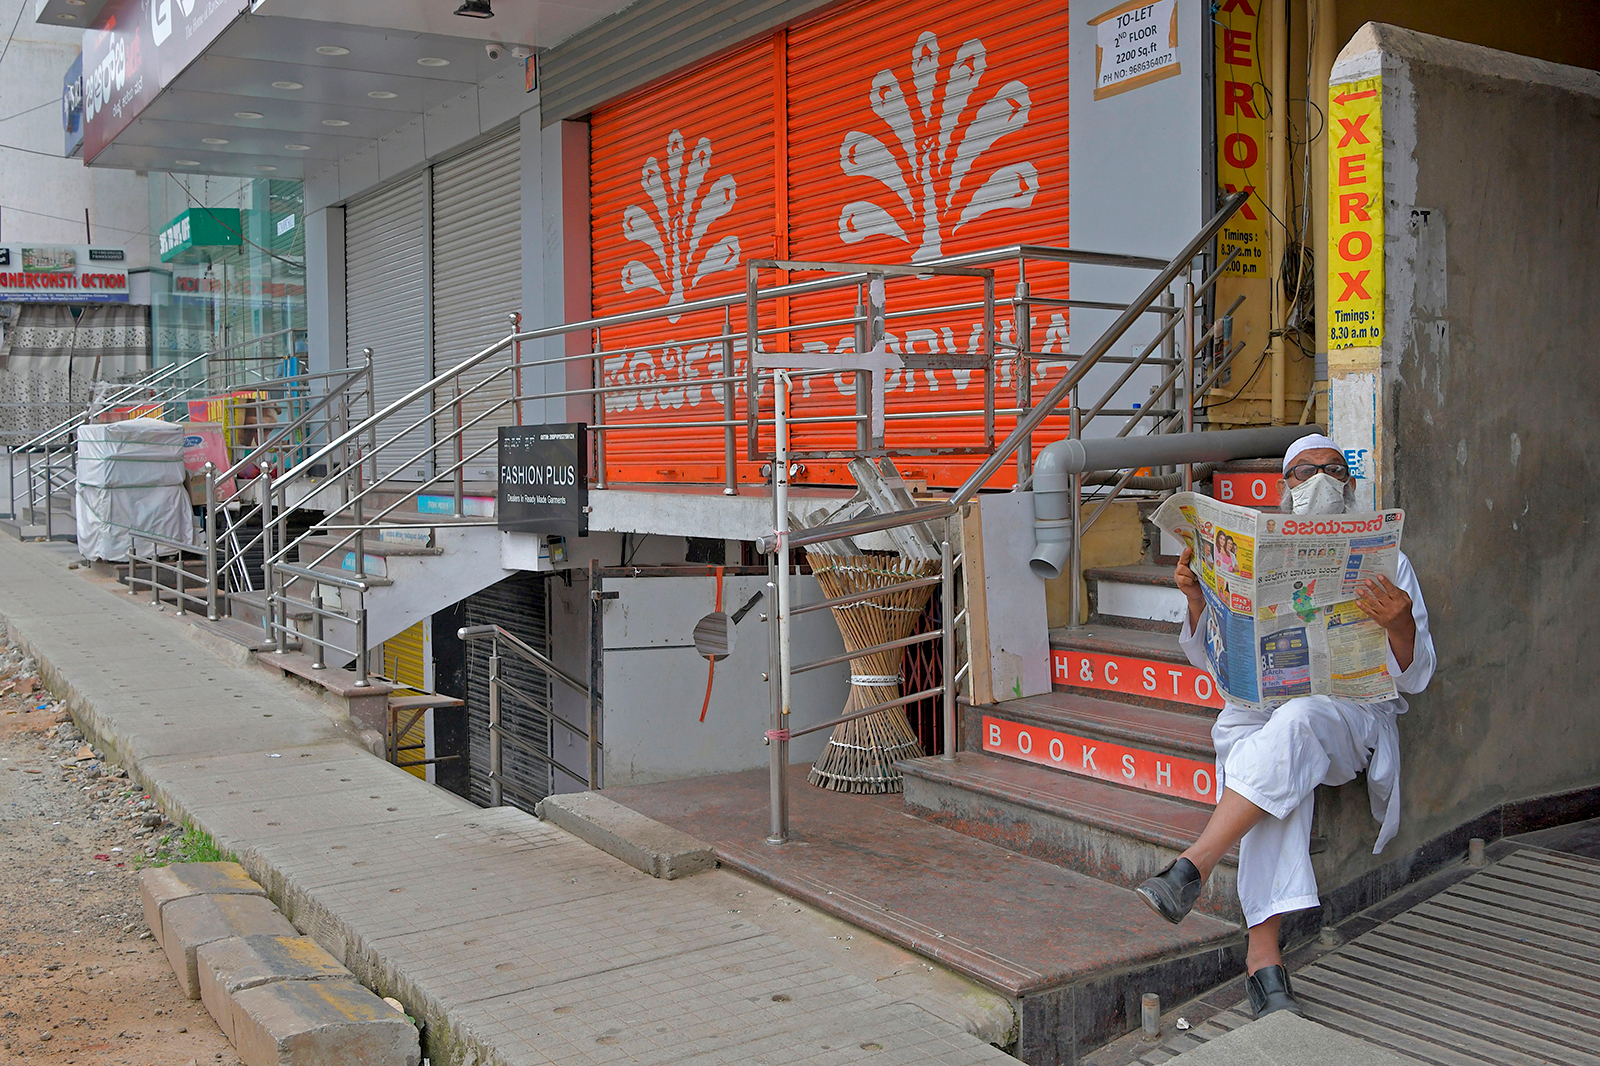 A man reads a newspaper while sitting in front of closed shops in a commercial area in Bangalore, India on July 15.